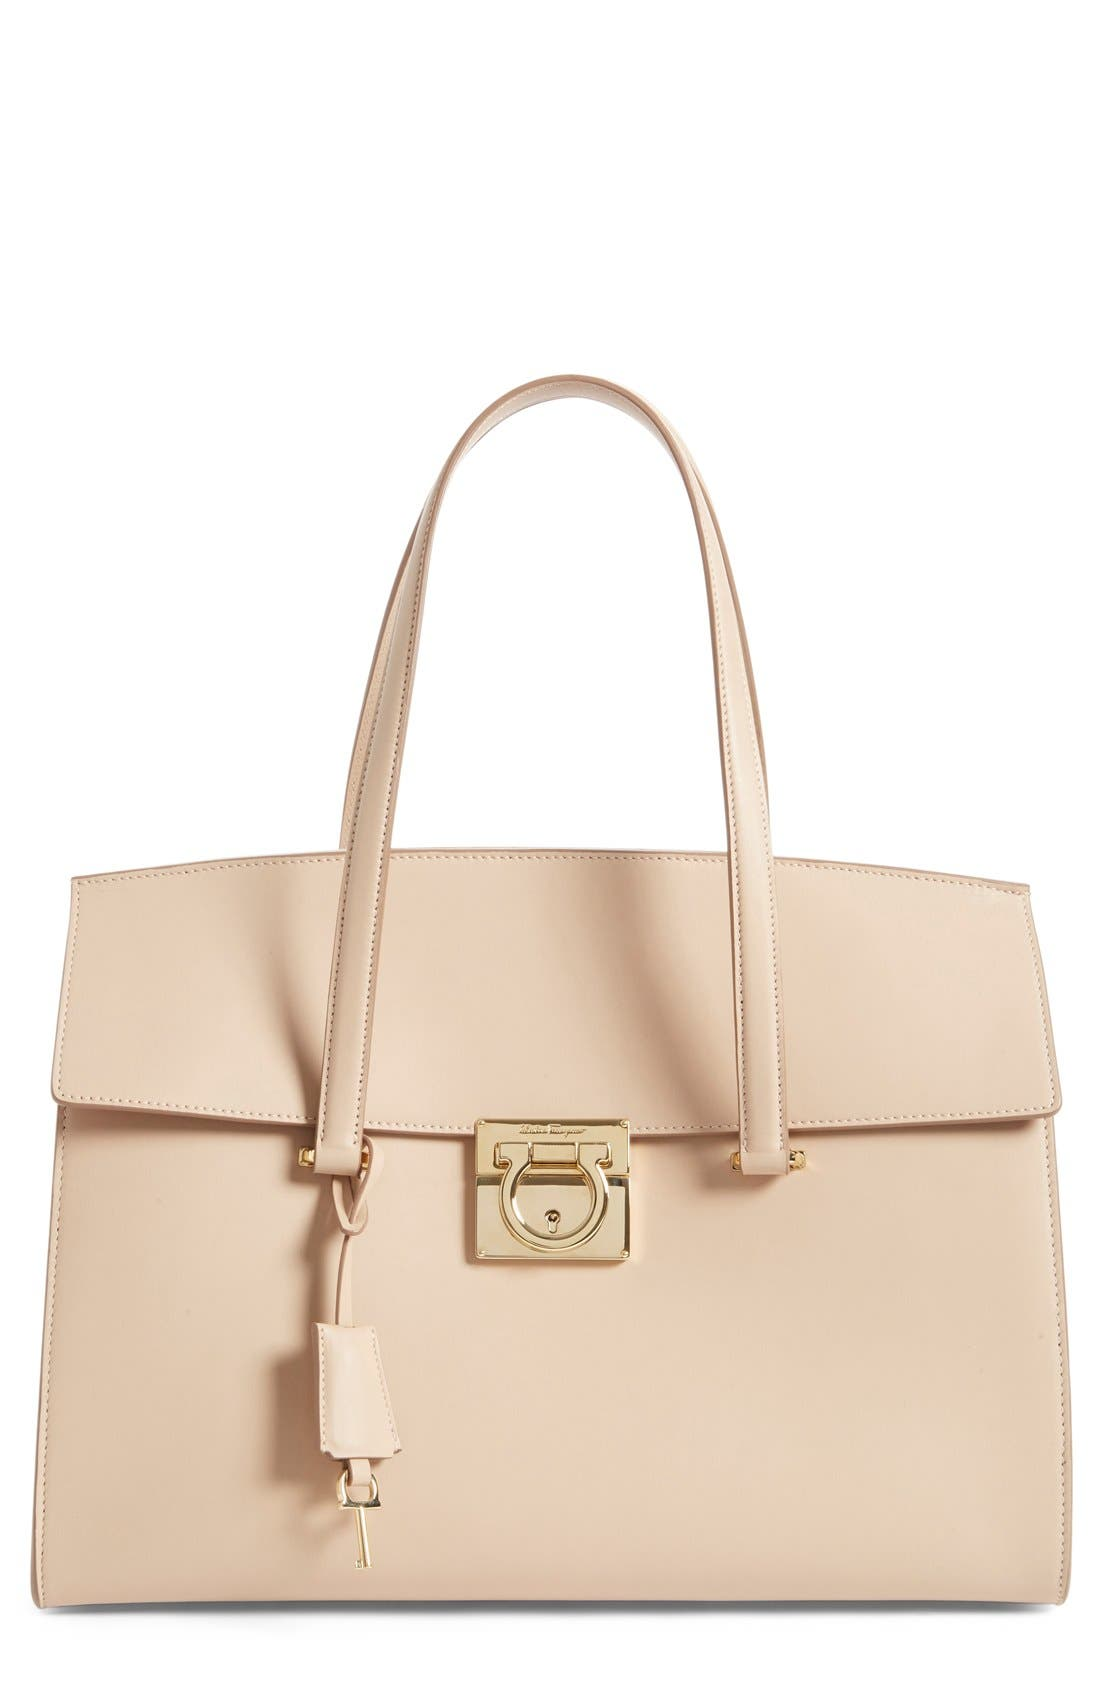 Large Smooth Leather Satchel,                             Main thumbnail 1, color,                             250